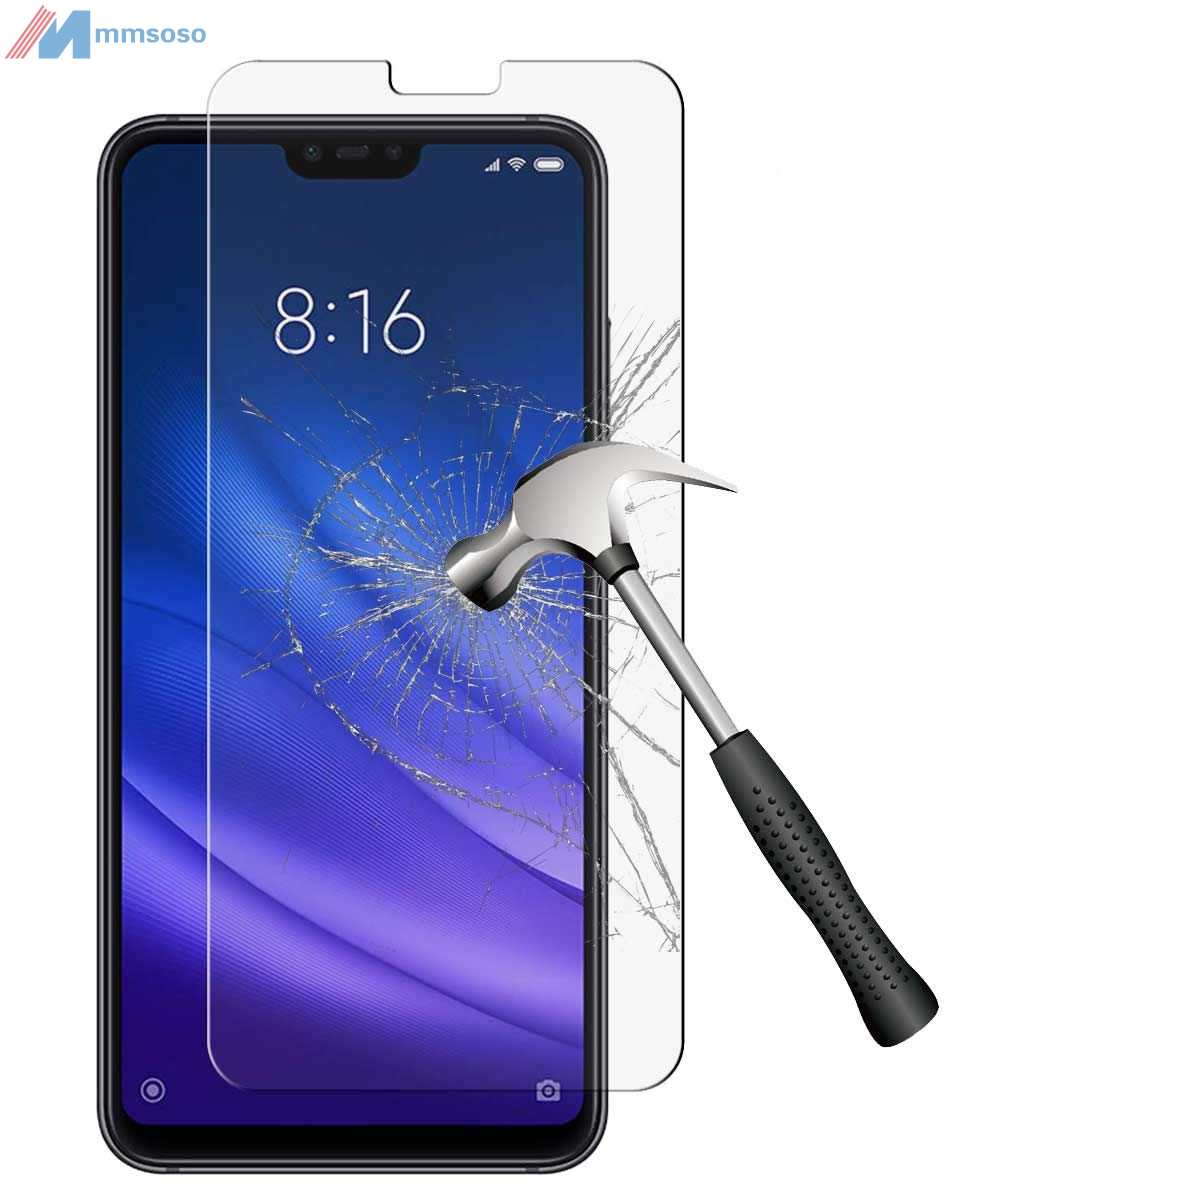 "9H Tempered Glass for Doogee N10 5.84"" GLASS Protective Film Screen Protector cover Mobile phone Doogee N10"